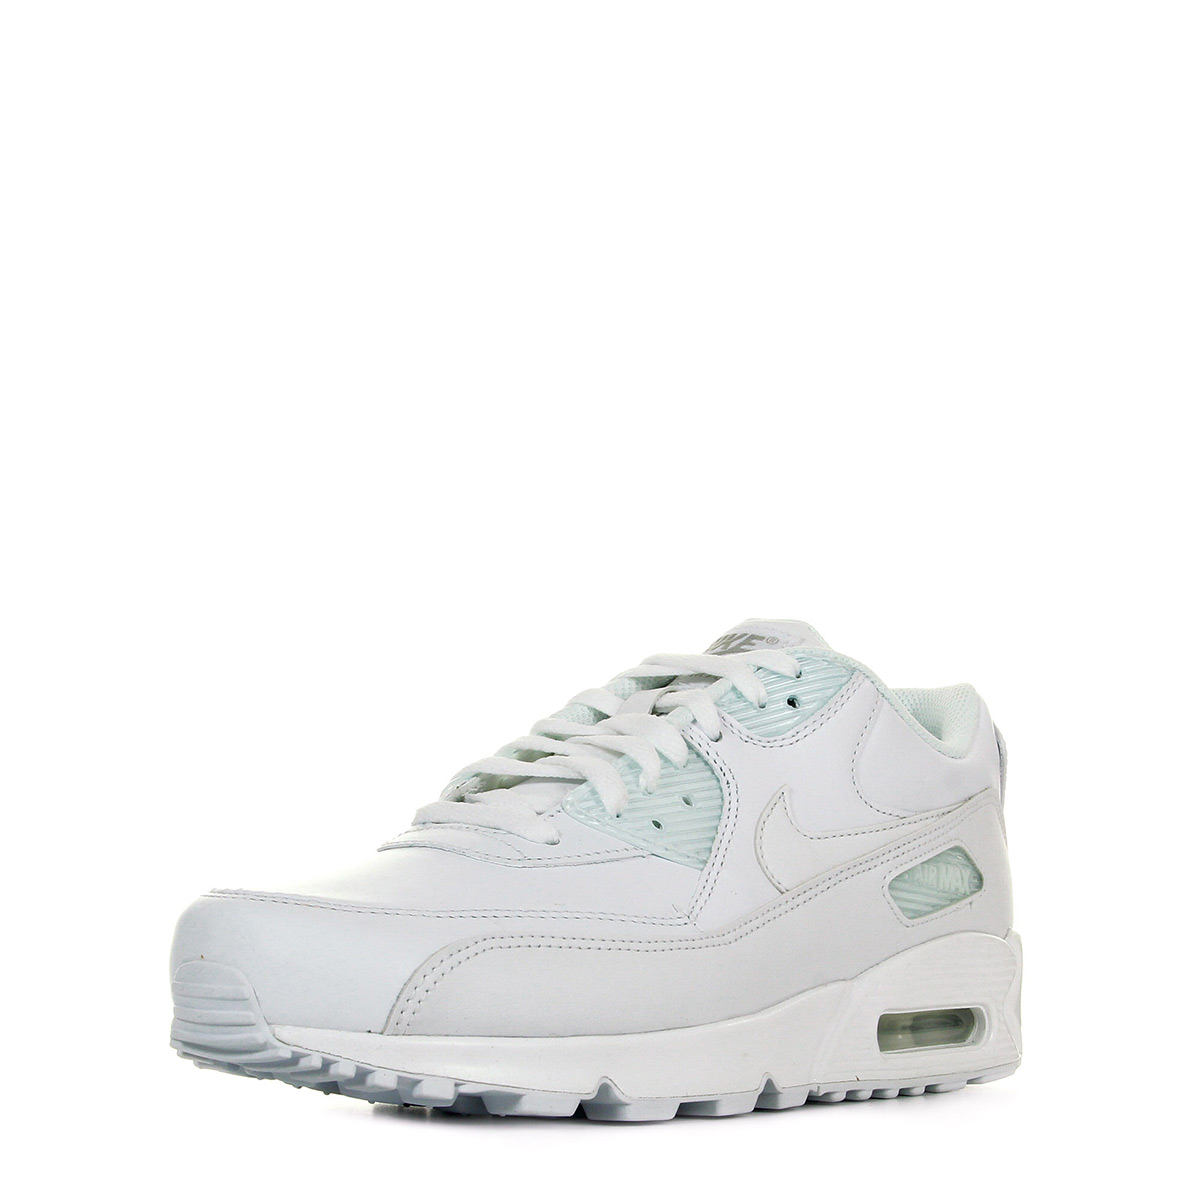 Chaussures Tendance Chaussures Baskets Nike Homme Taille Air Max 90 Leather Taille Homme Twxwtruo-180310-7521735